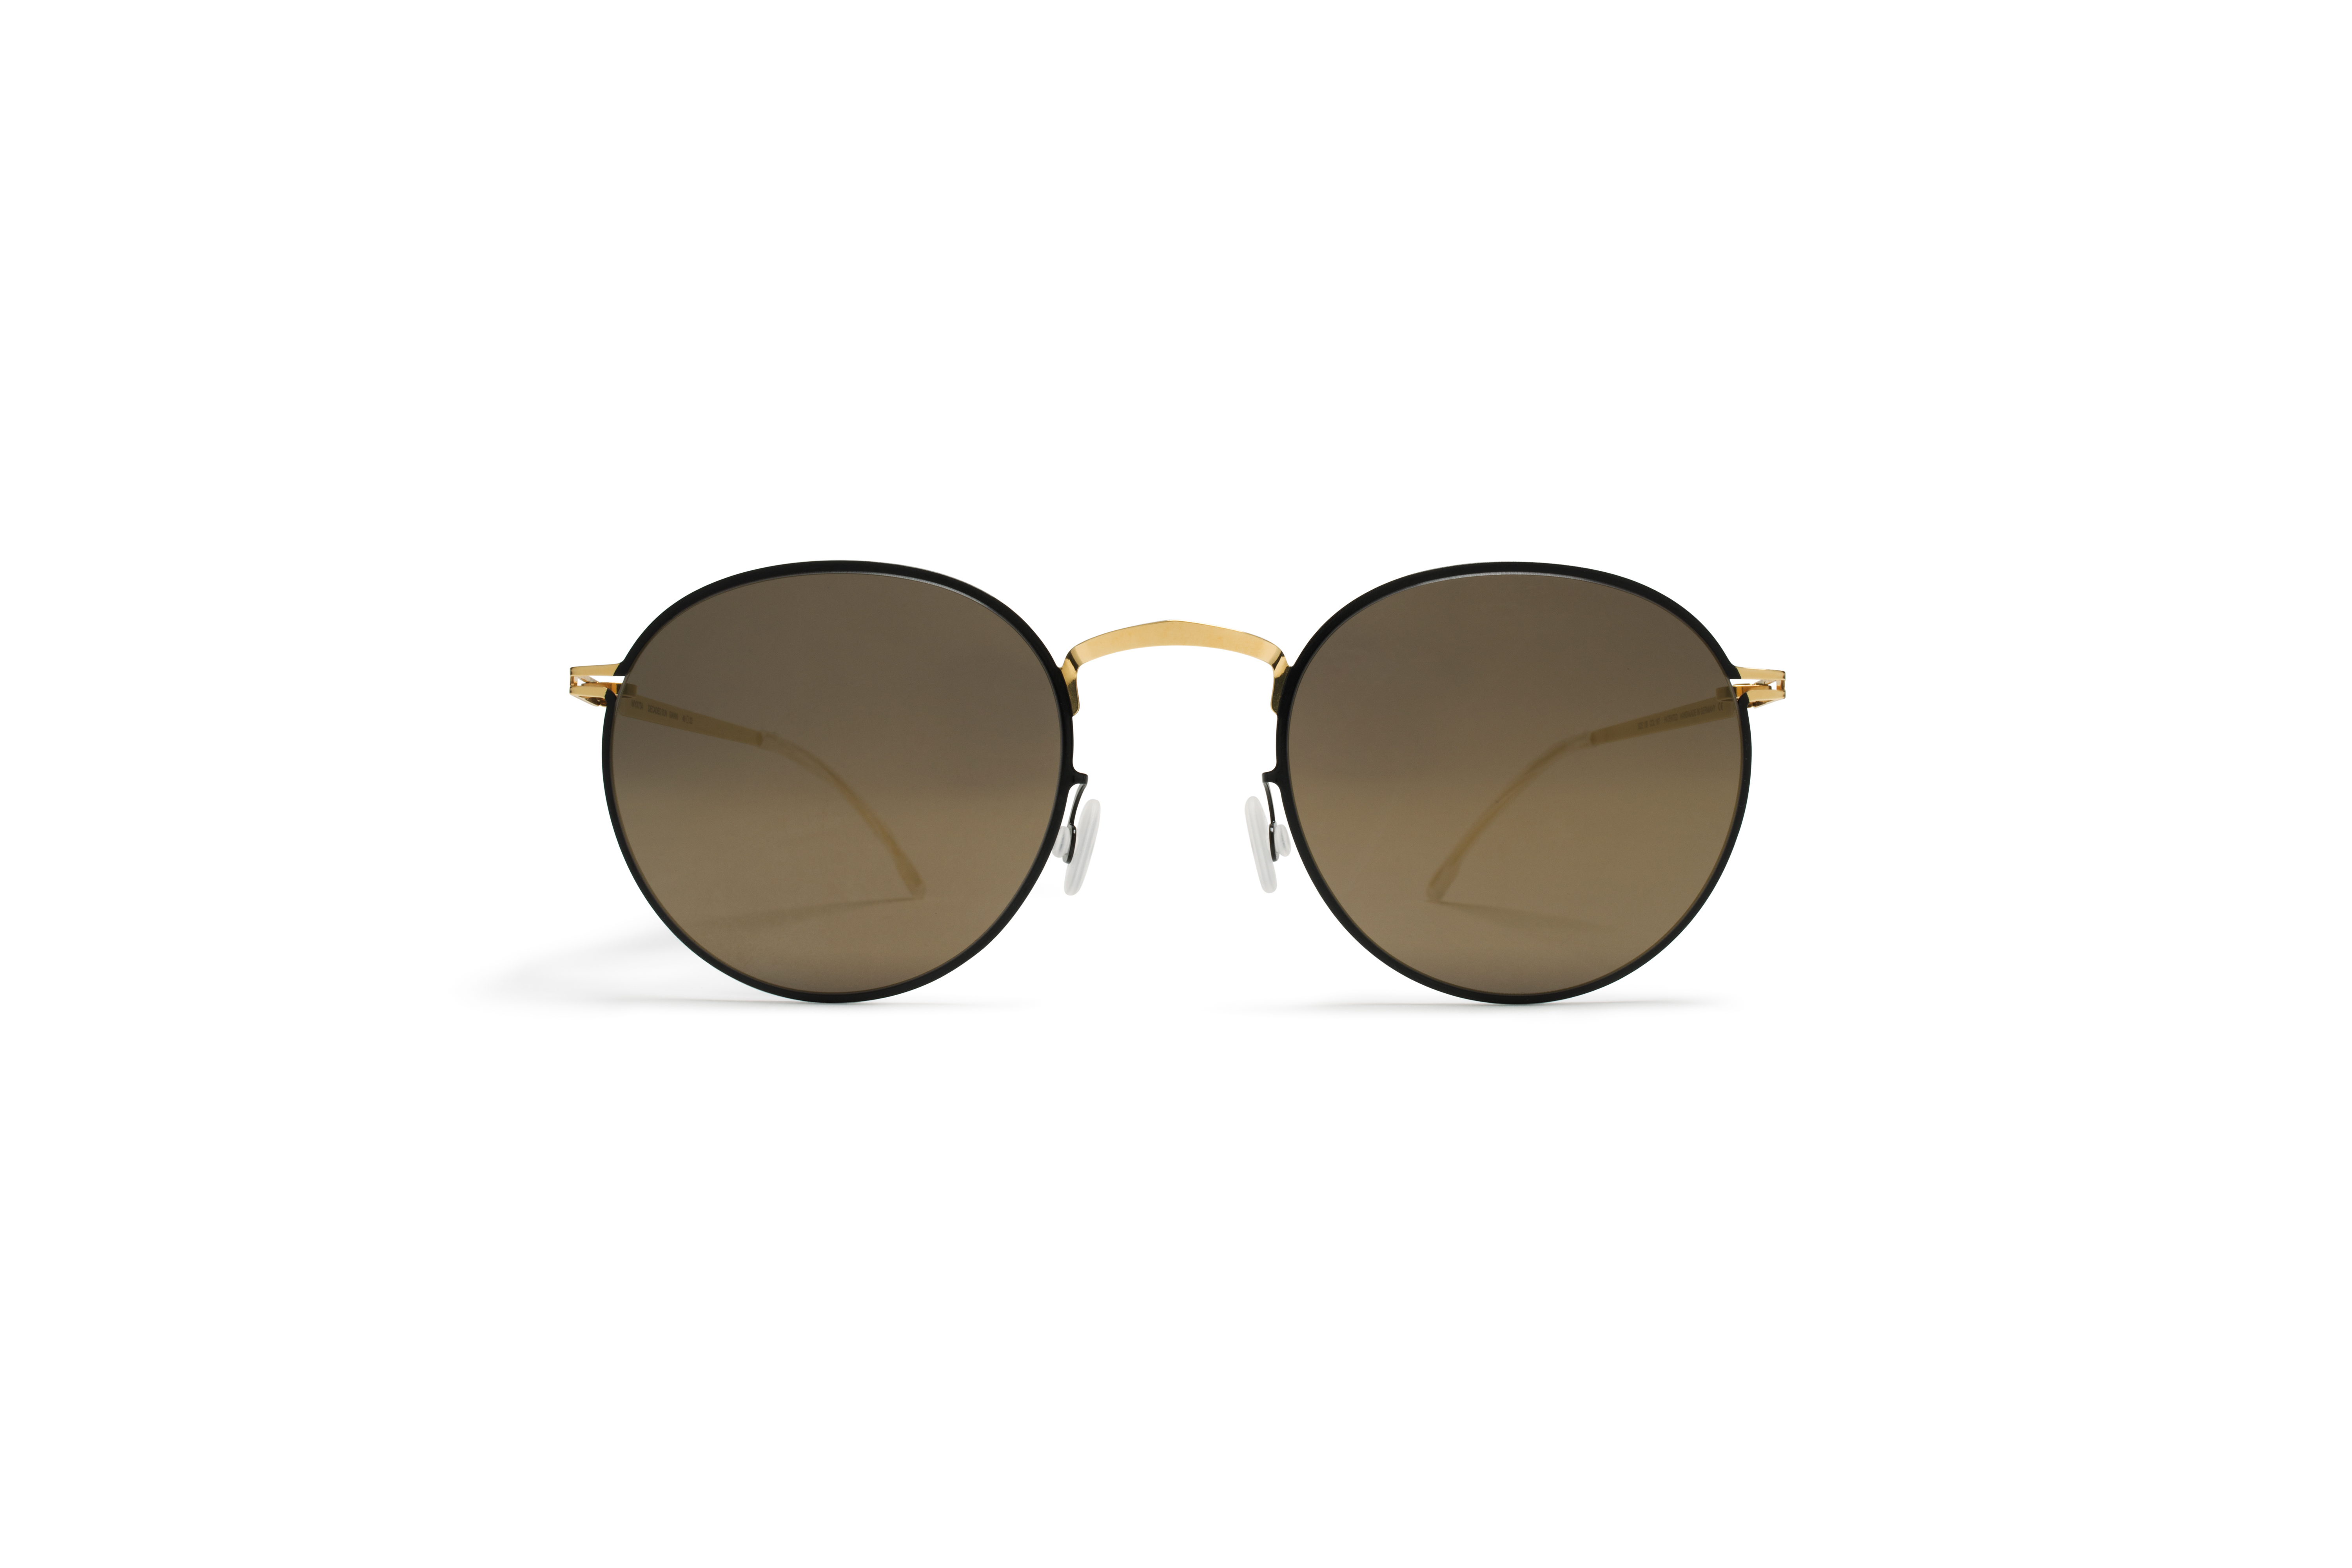 MYKITA Decades Sun Gianni Gold Jetblack Brilliantg56bb1d442d9ab